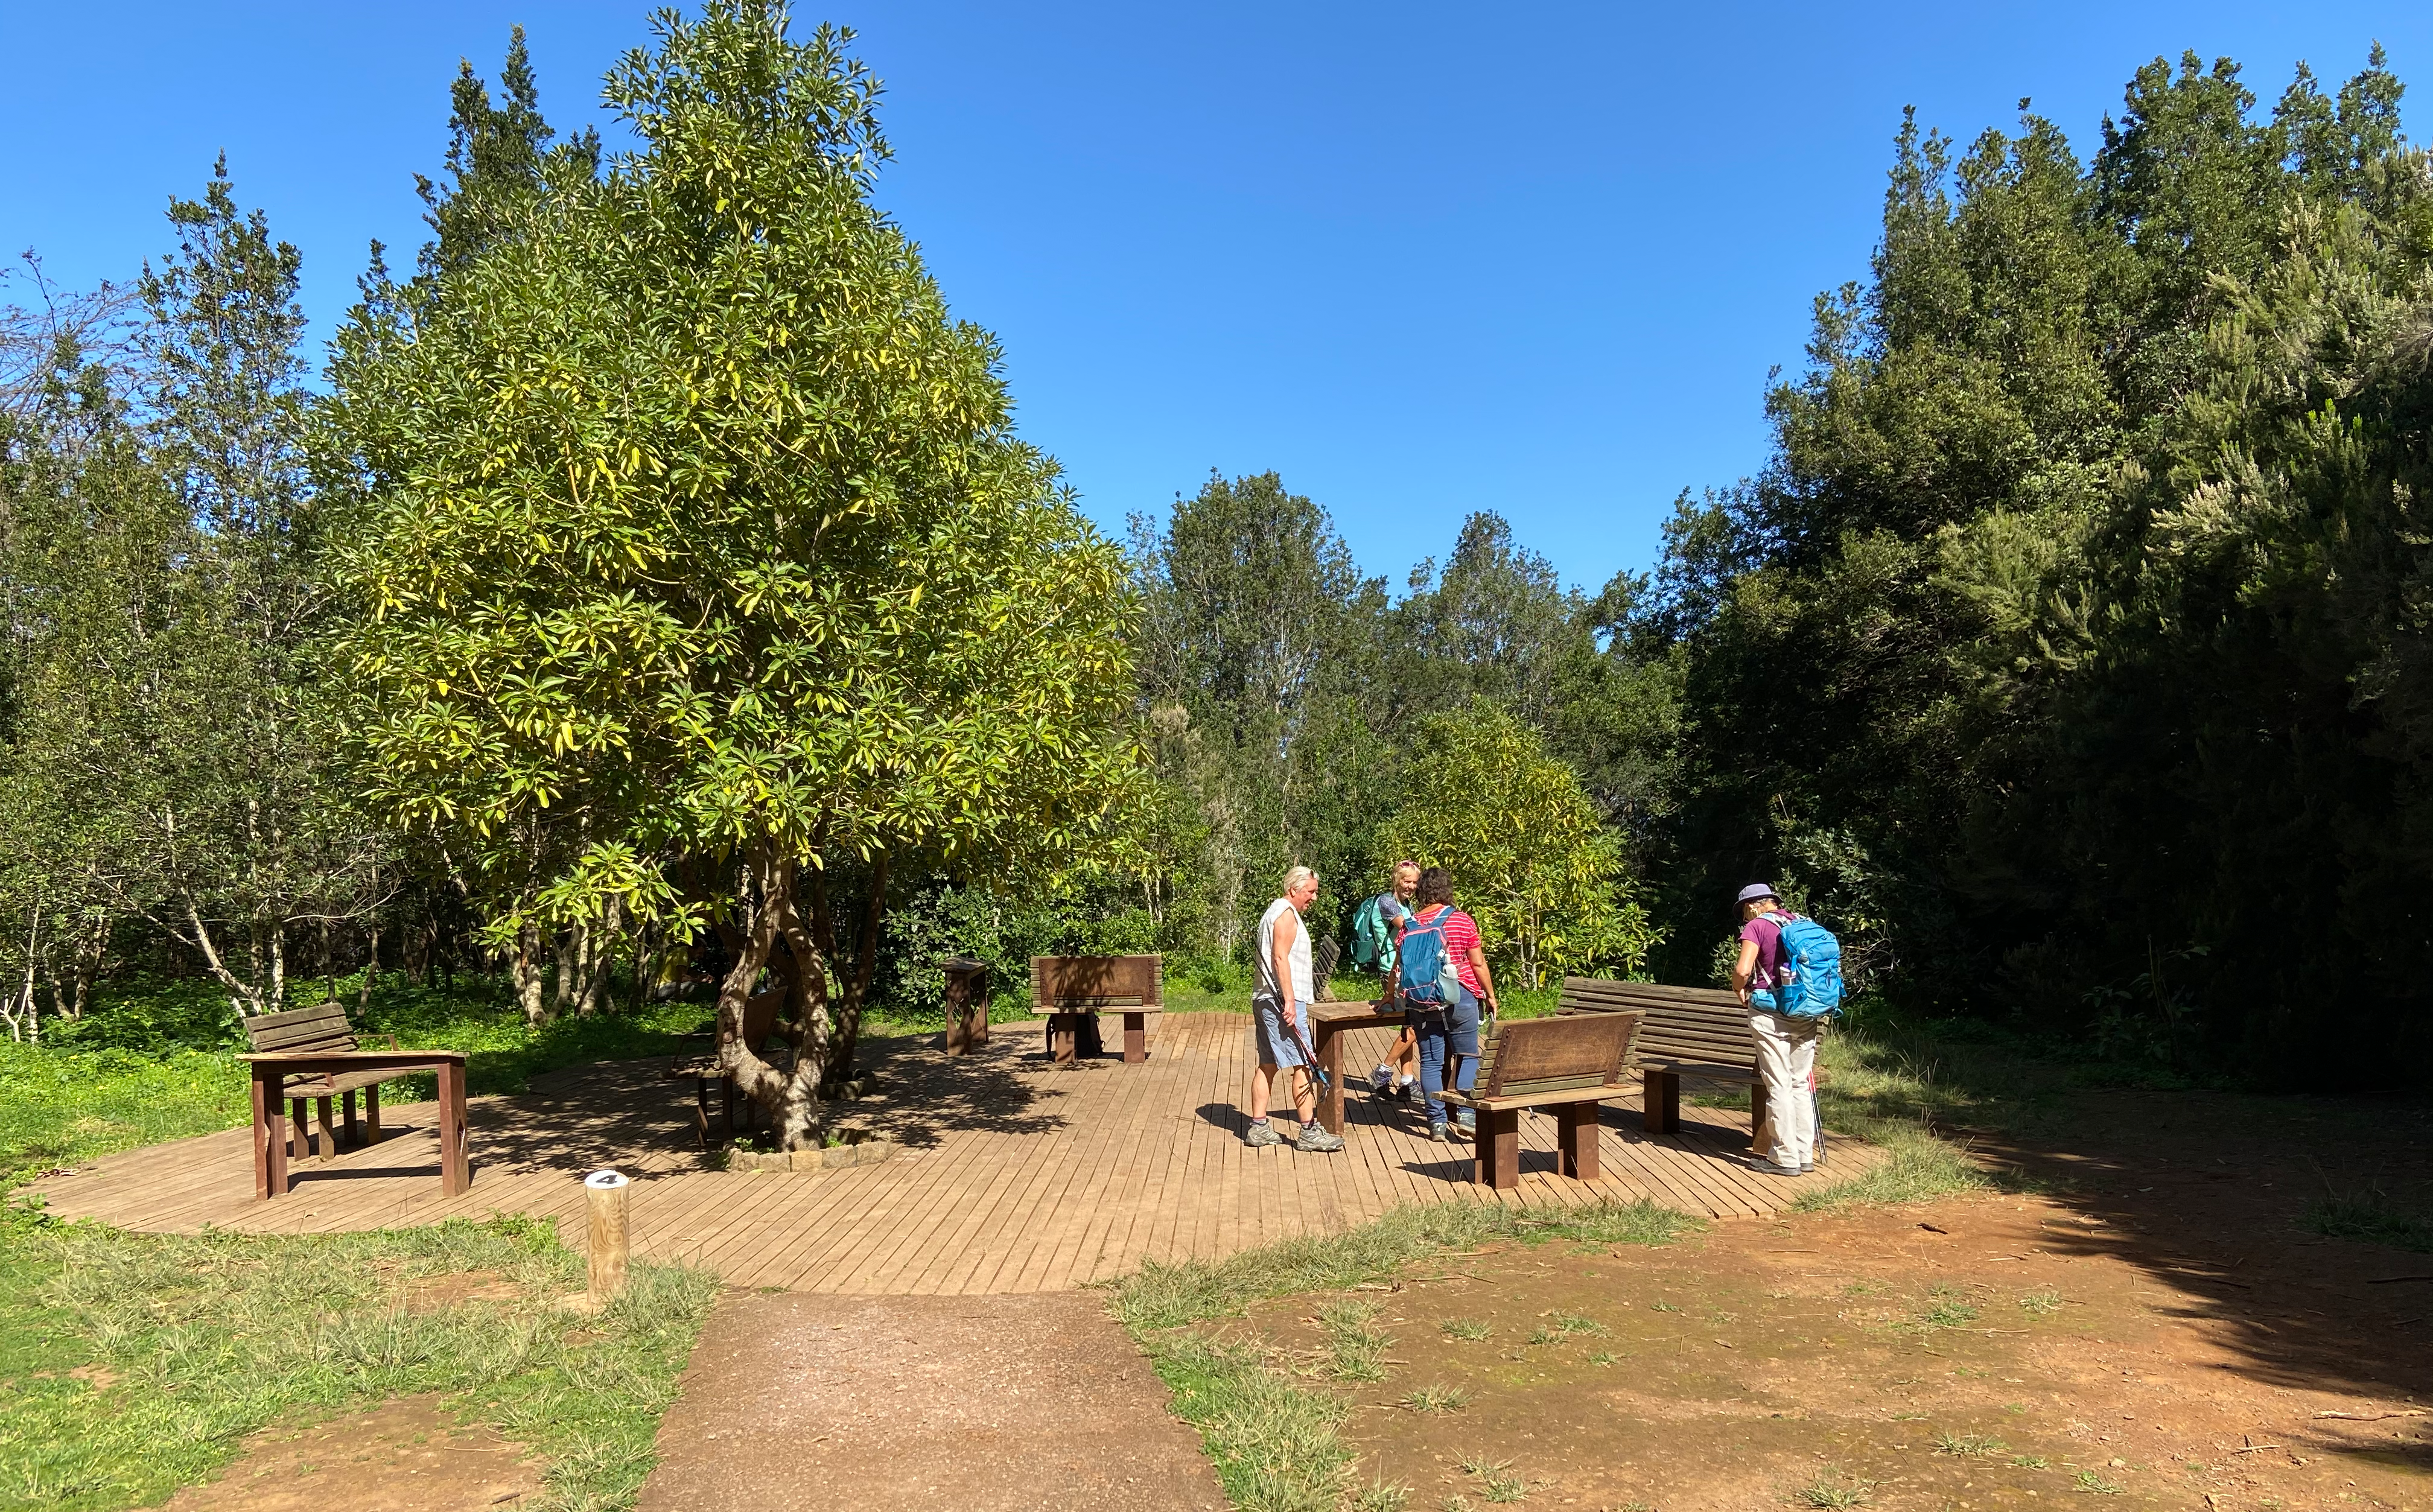 Small rest area on the hiking trail